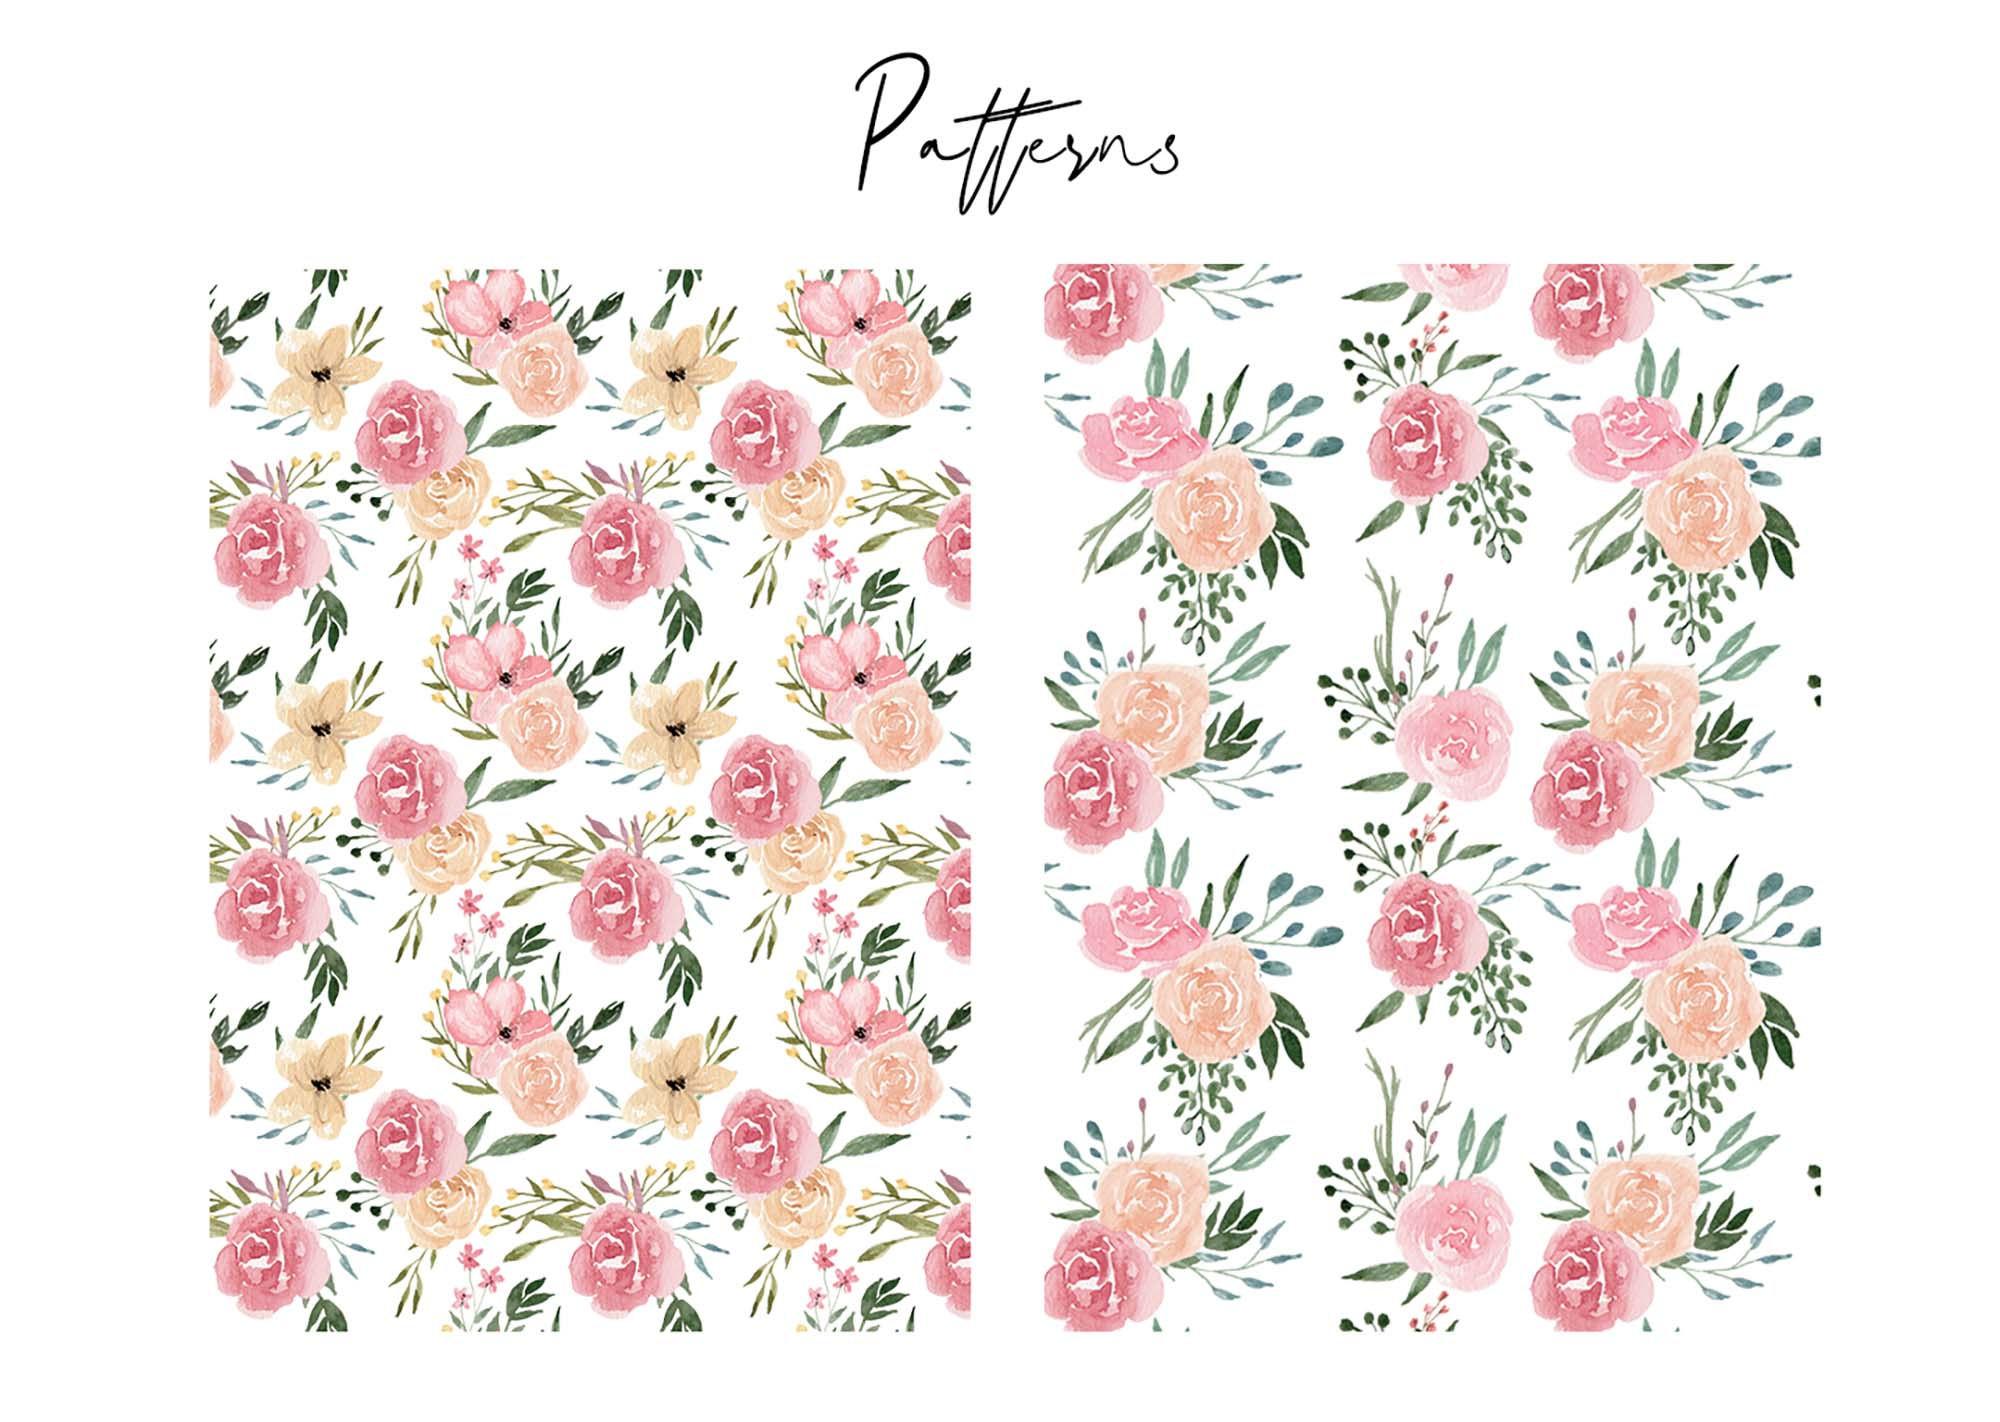 Dusty Blooms Watercolor Graphic Illustrations 2